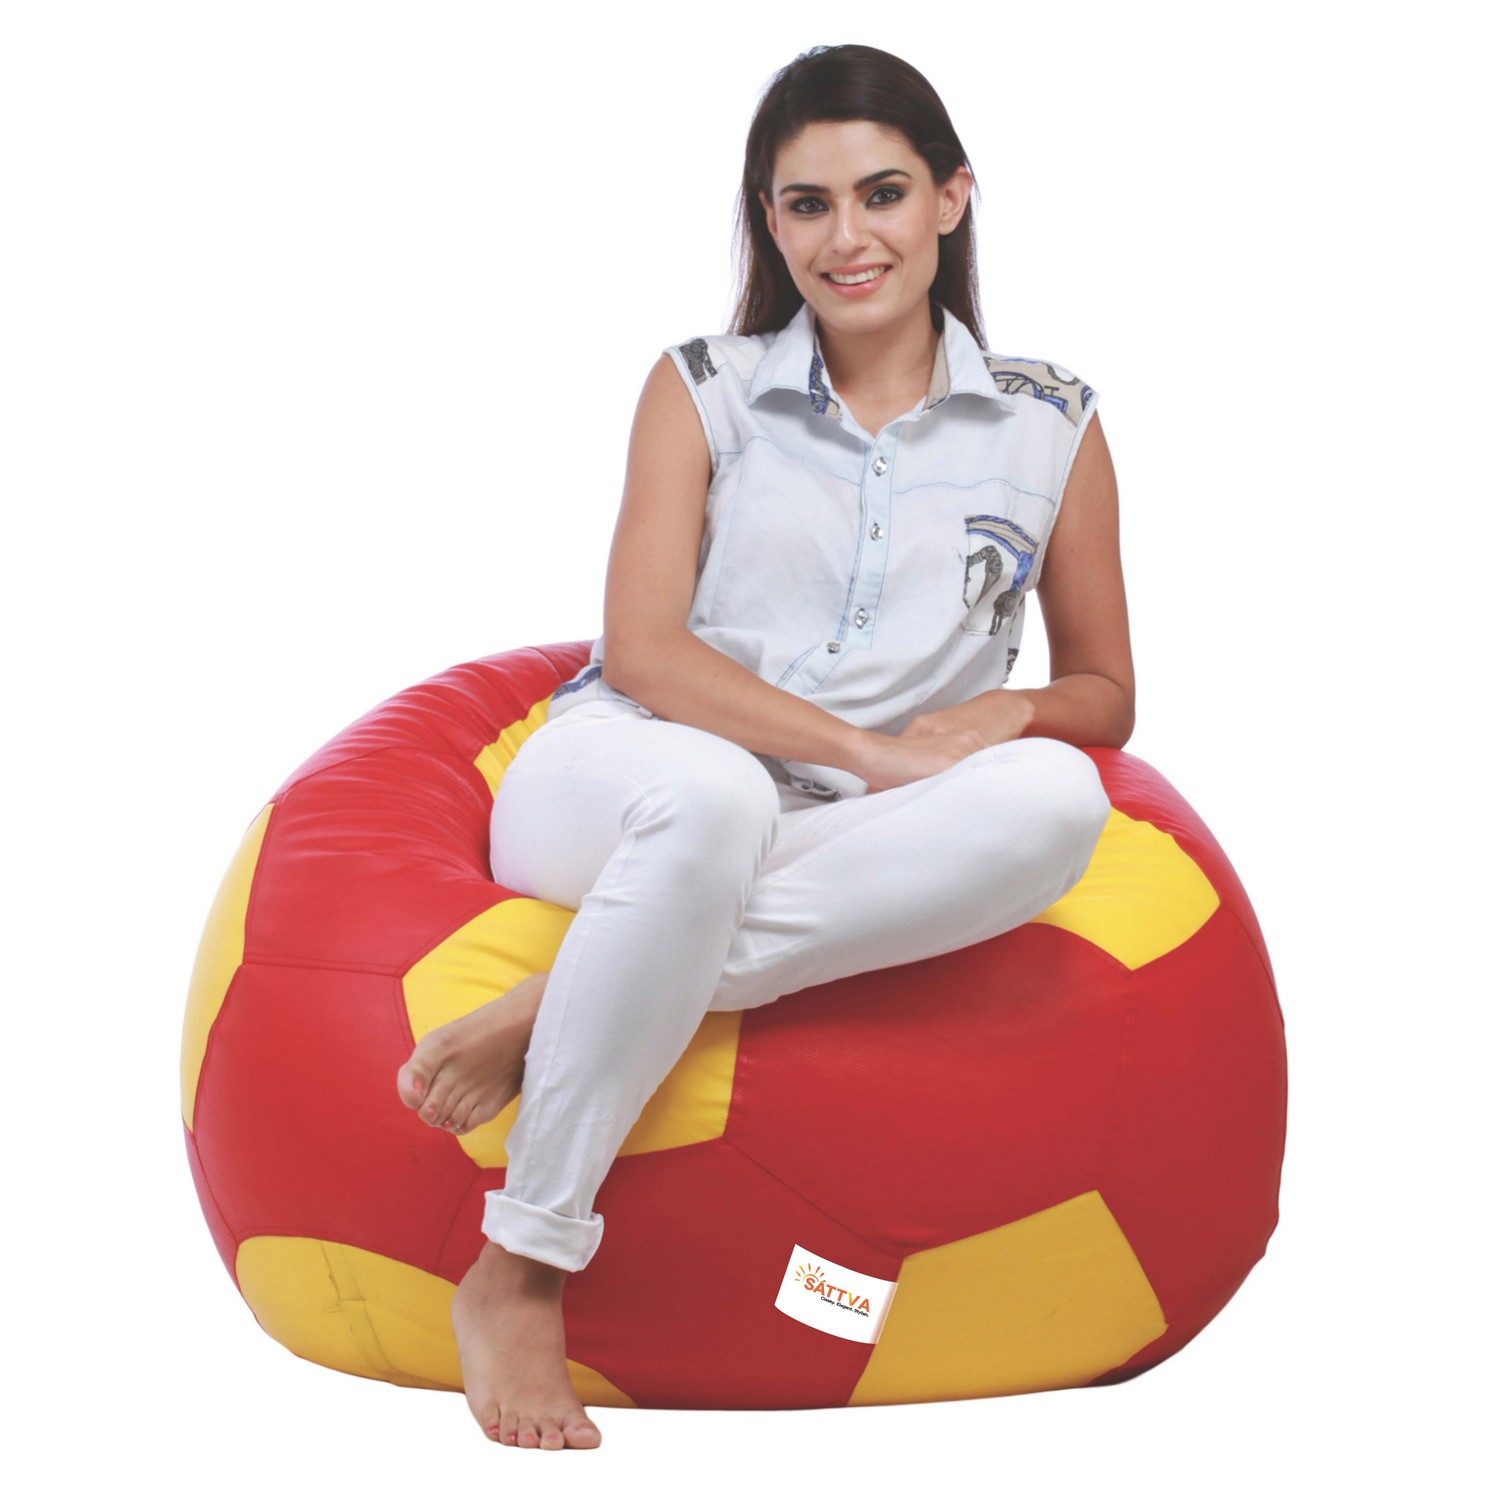 Sattva Combo Football Bean Bag And Round Foostool -Filled Black Red - XXL (Red Yellow, XXL)